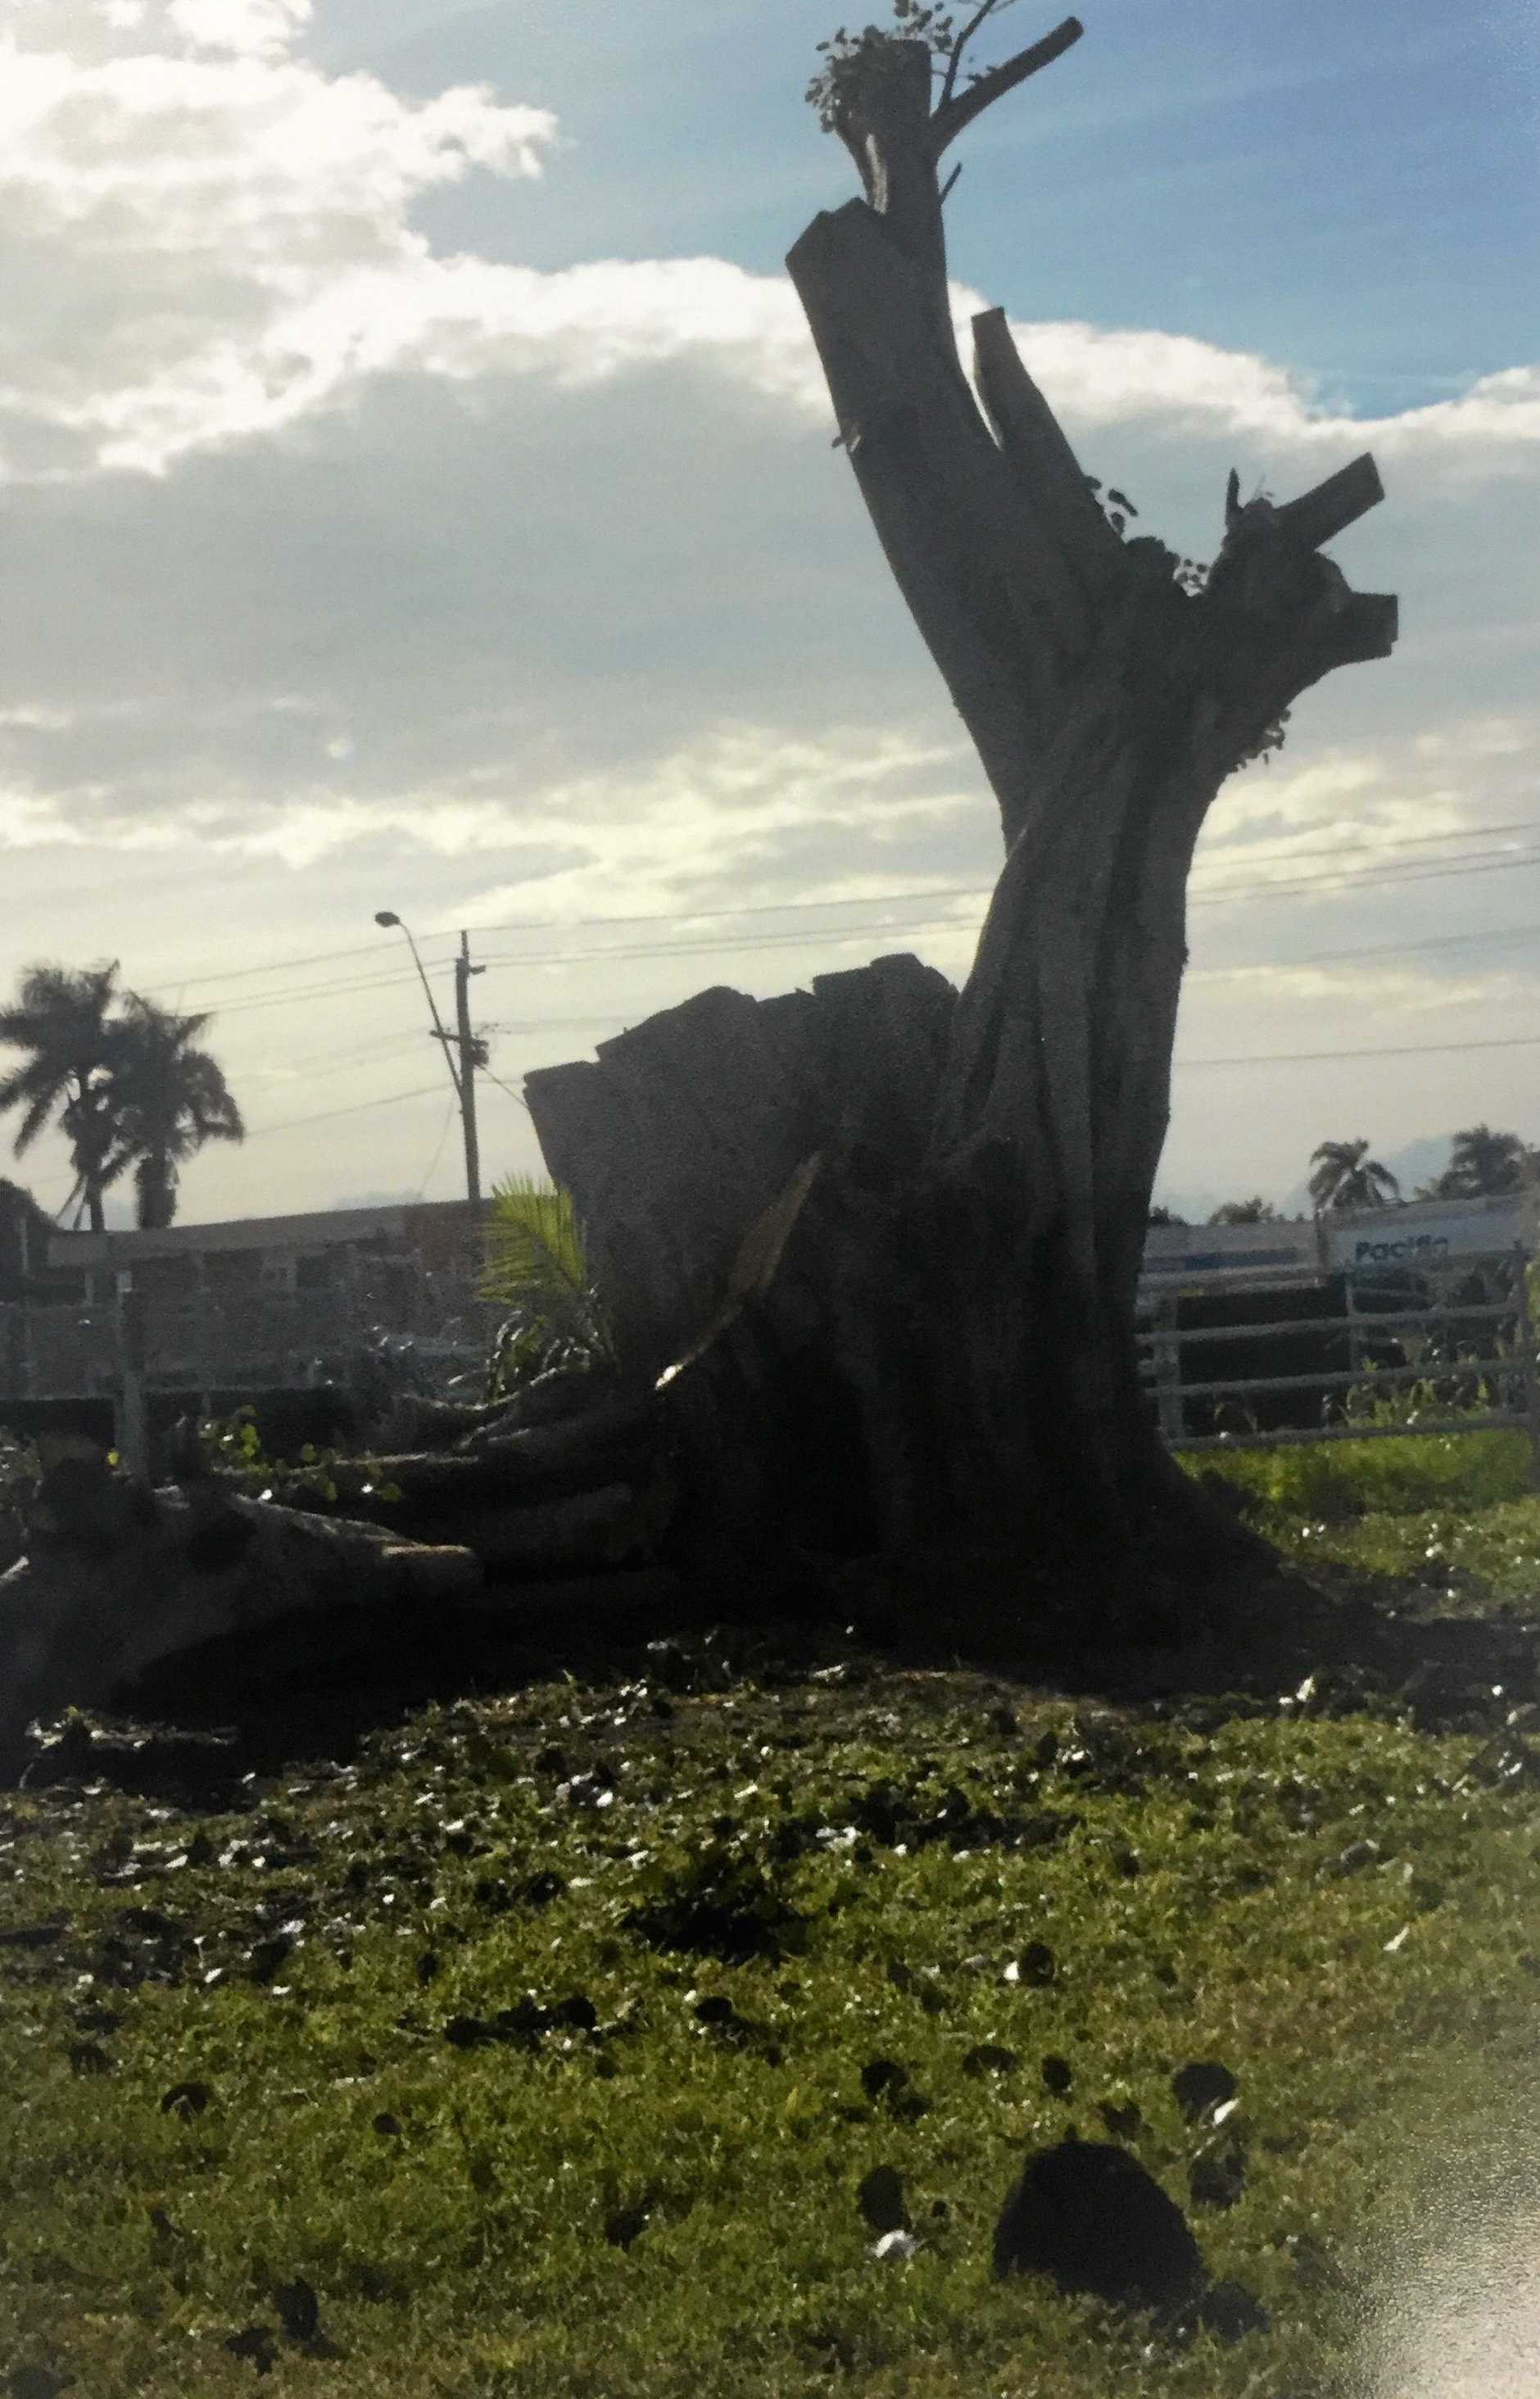 TREE GONE: An old fig tree was removed from the Mackay Showgrounds this week due to safety concerns.